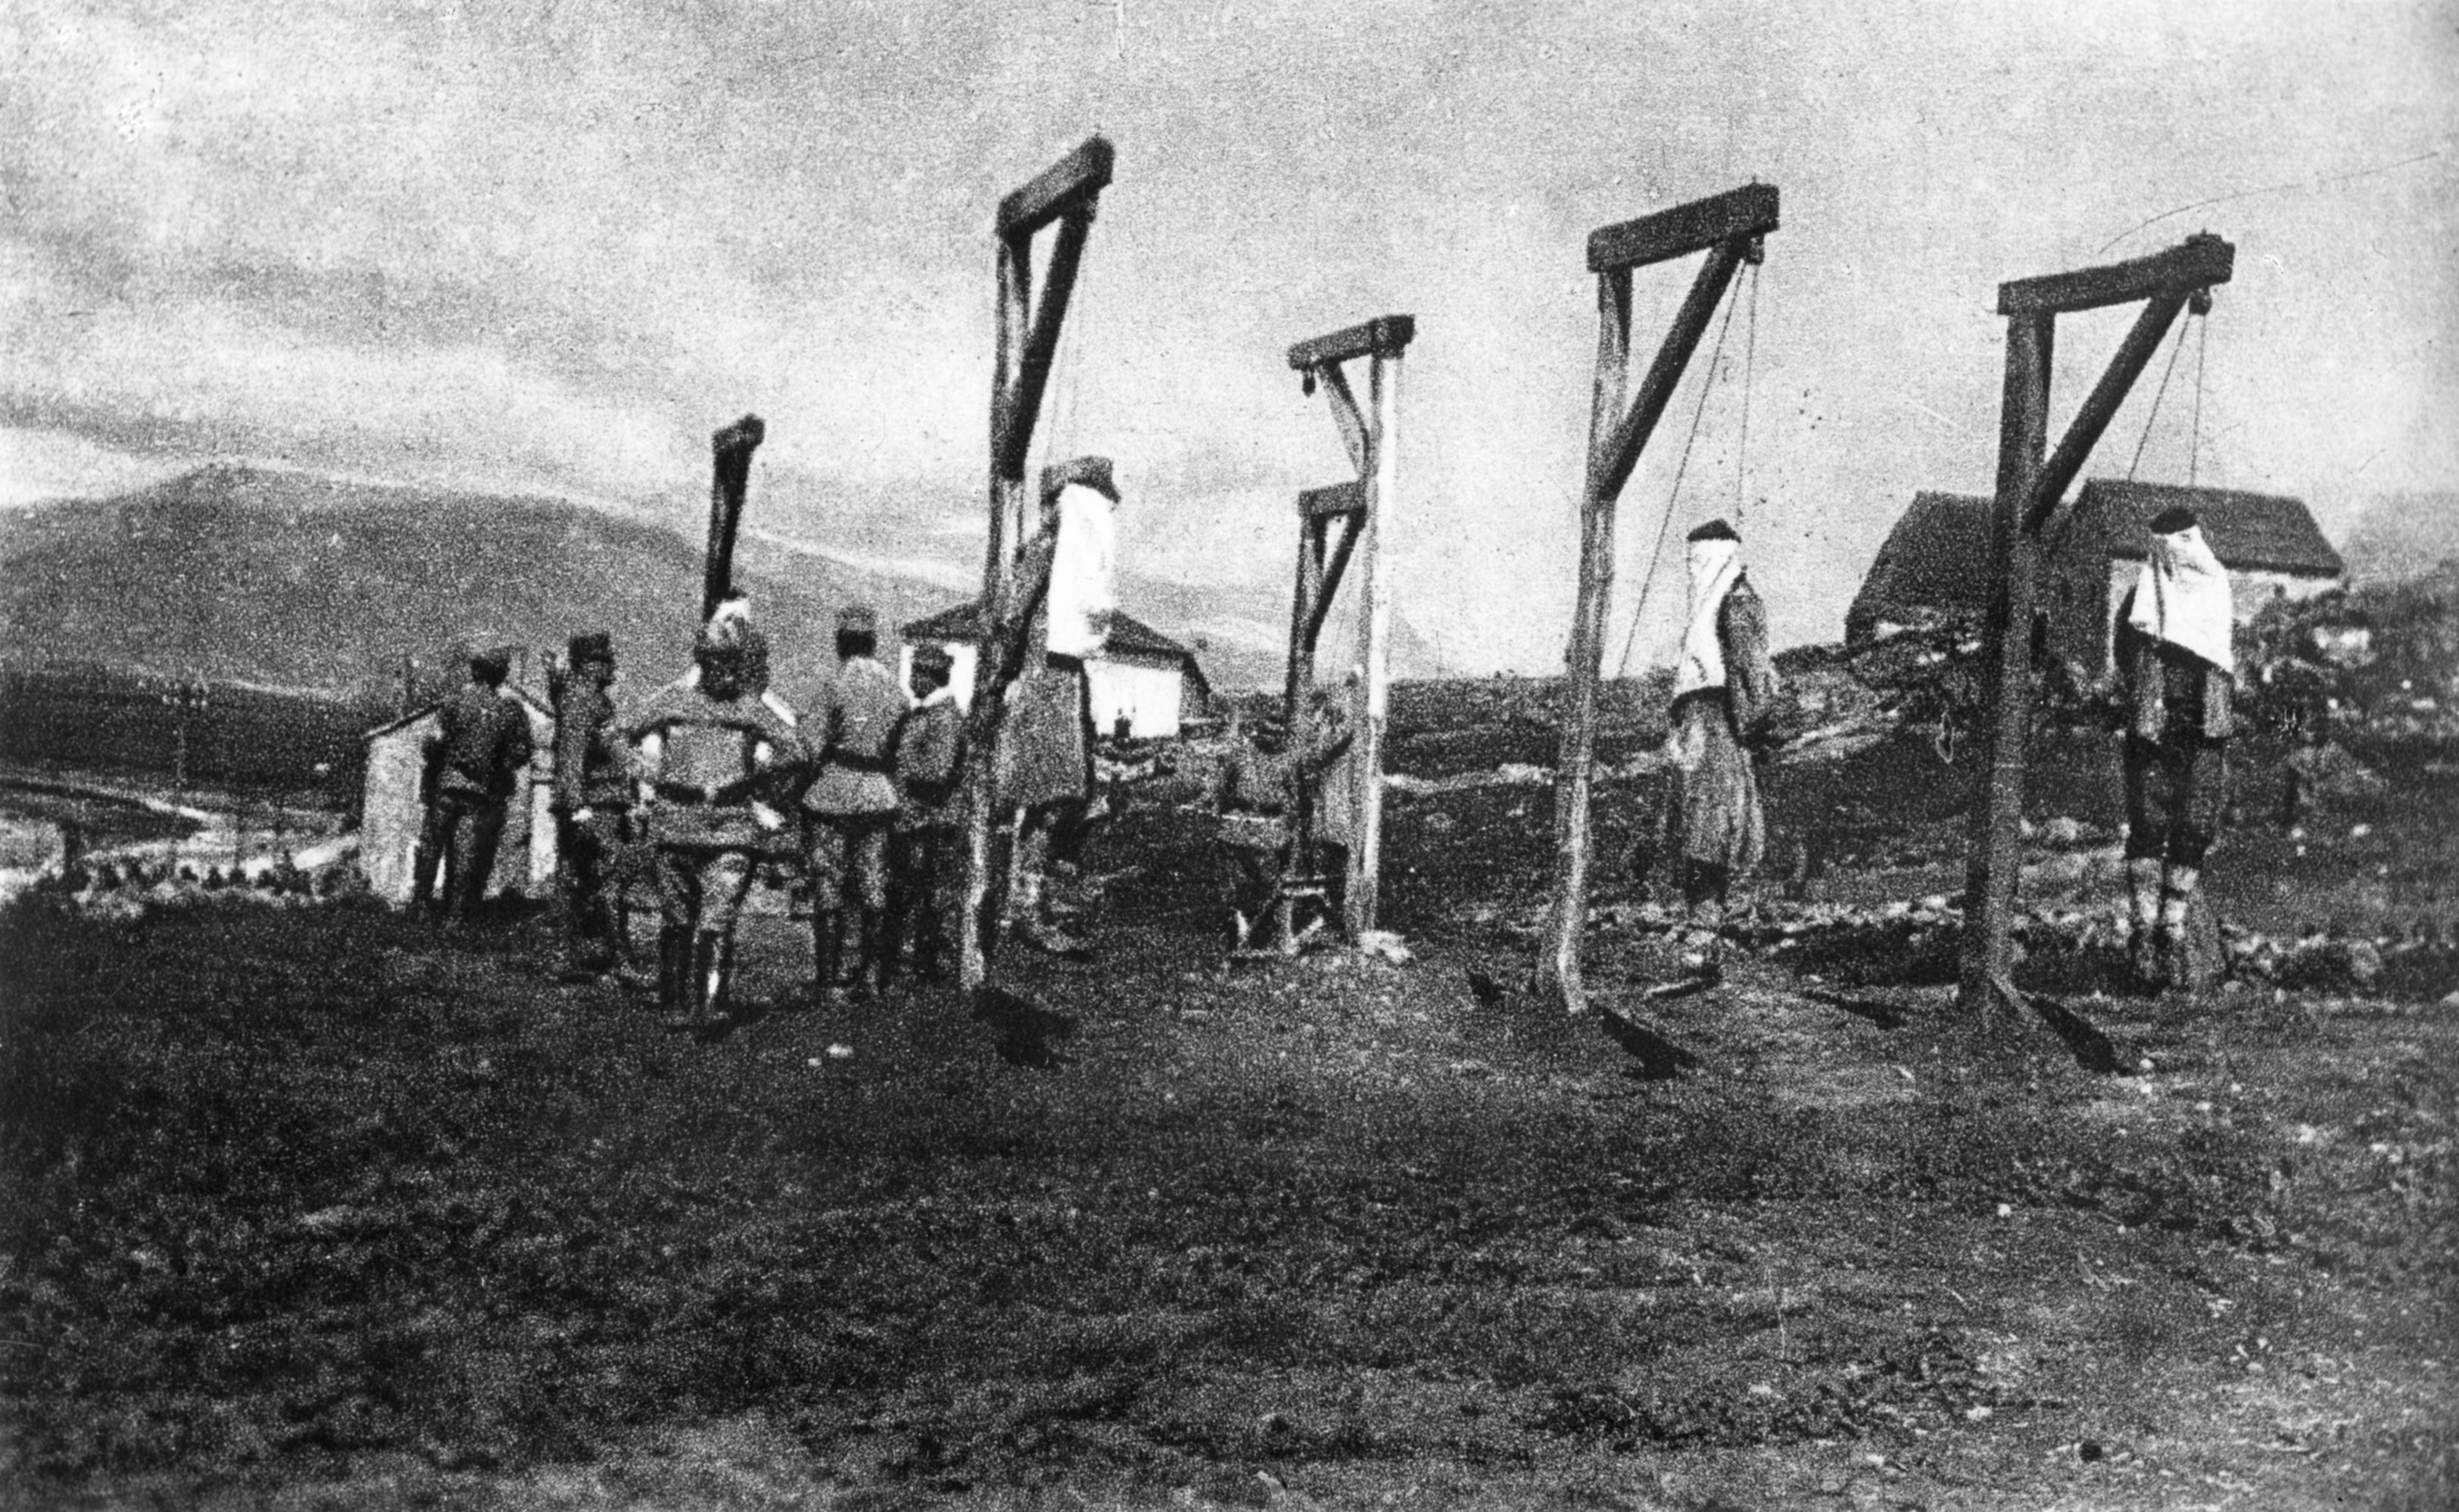 Serbian civilians hanged in reprisal. The Austrians recorded their acts as further intimidation